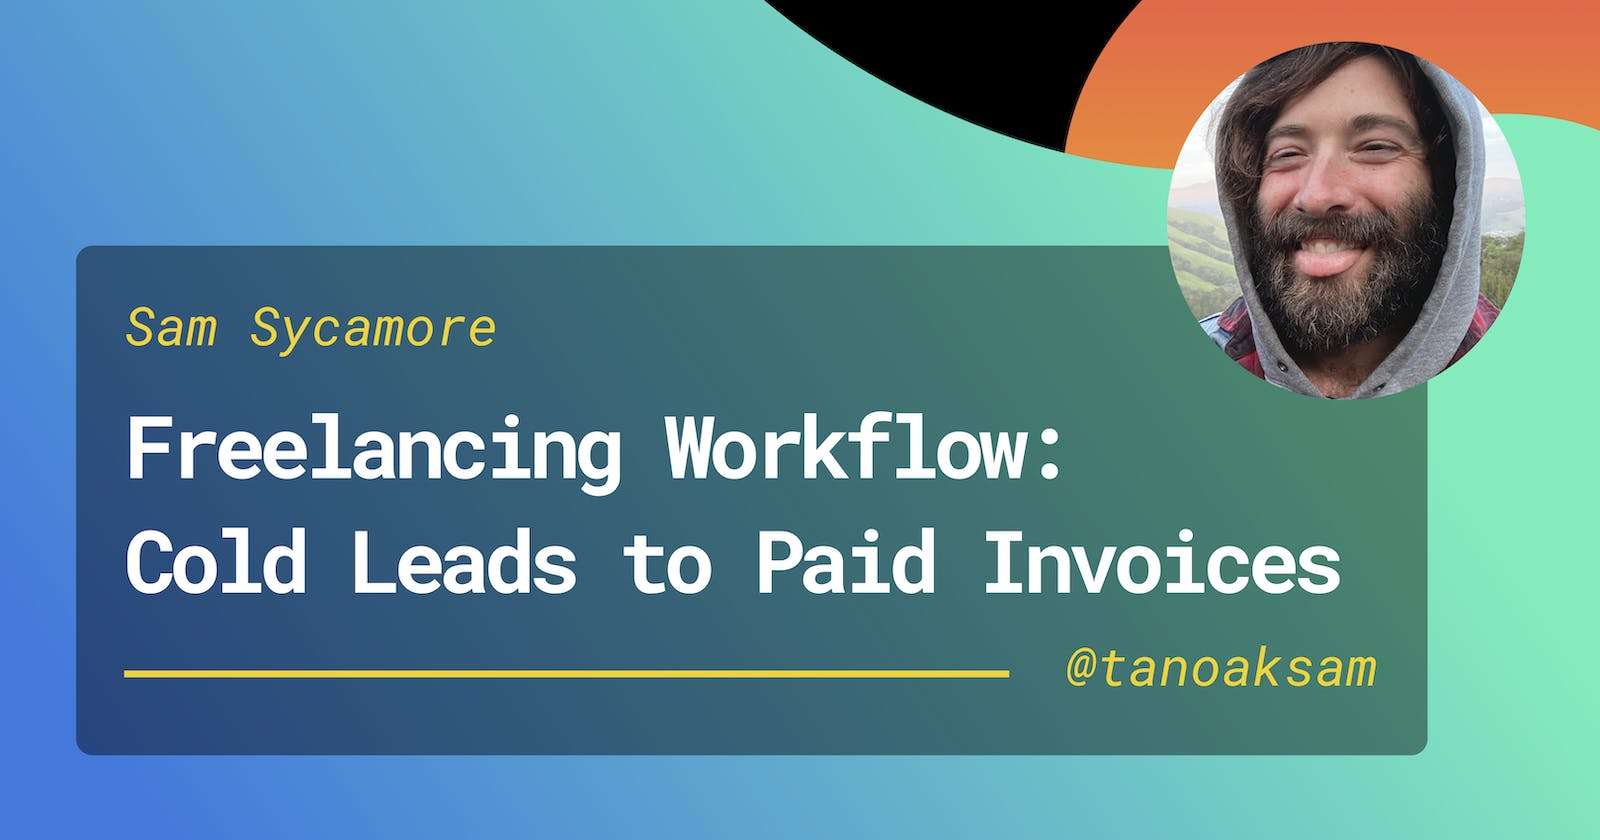 My Freelancing Workflow, from Cold Leads to Paid Invoices